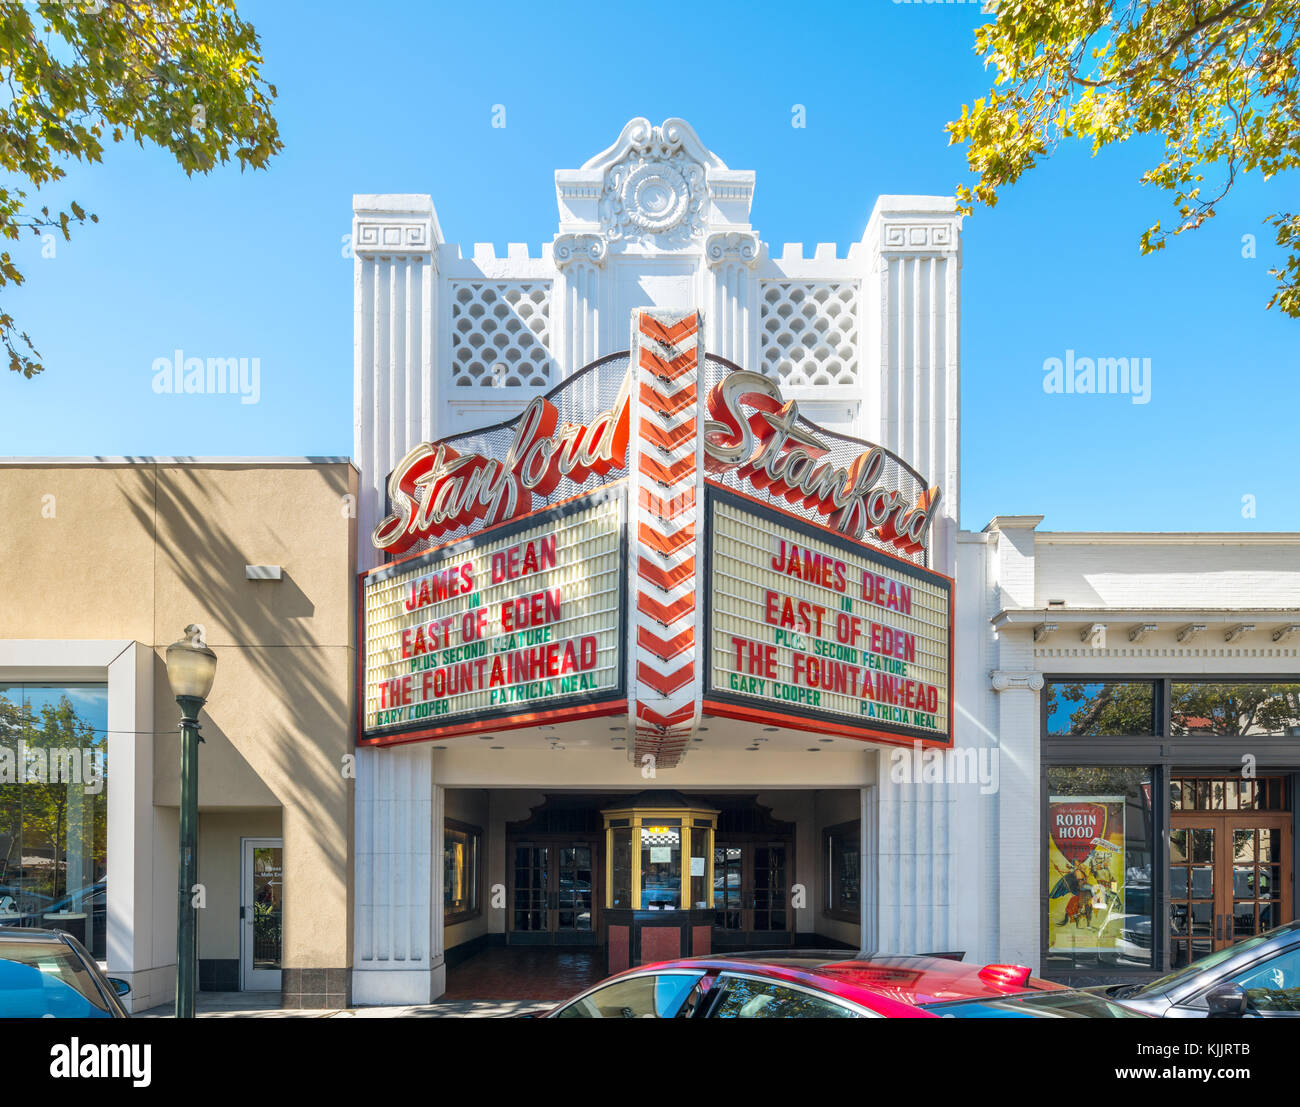 https://c7.alamy.com/comp/KJJRTB/restored-1925-palo-alto-stanford-movie-theater-showing-east-of-eden-KJJRTB.jpg